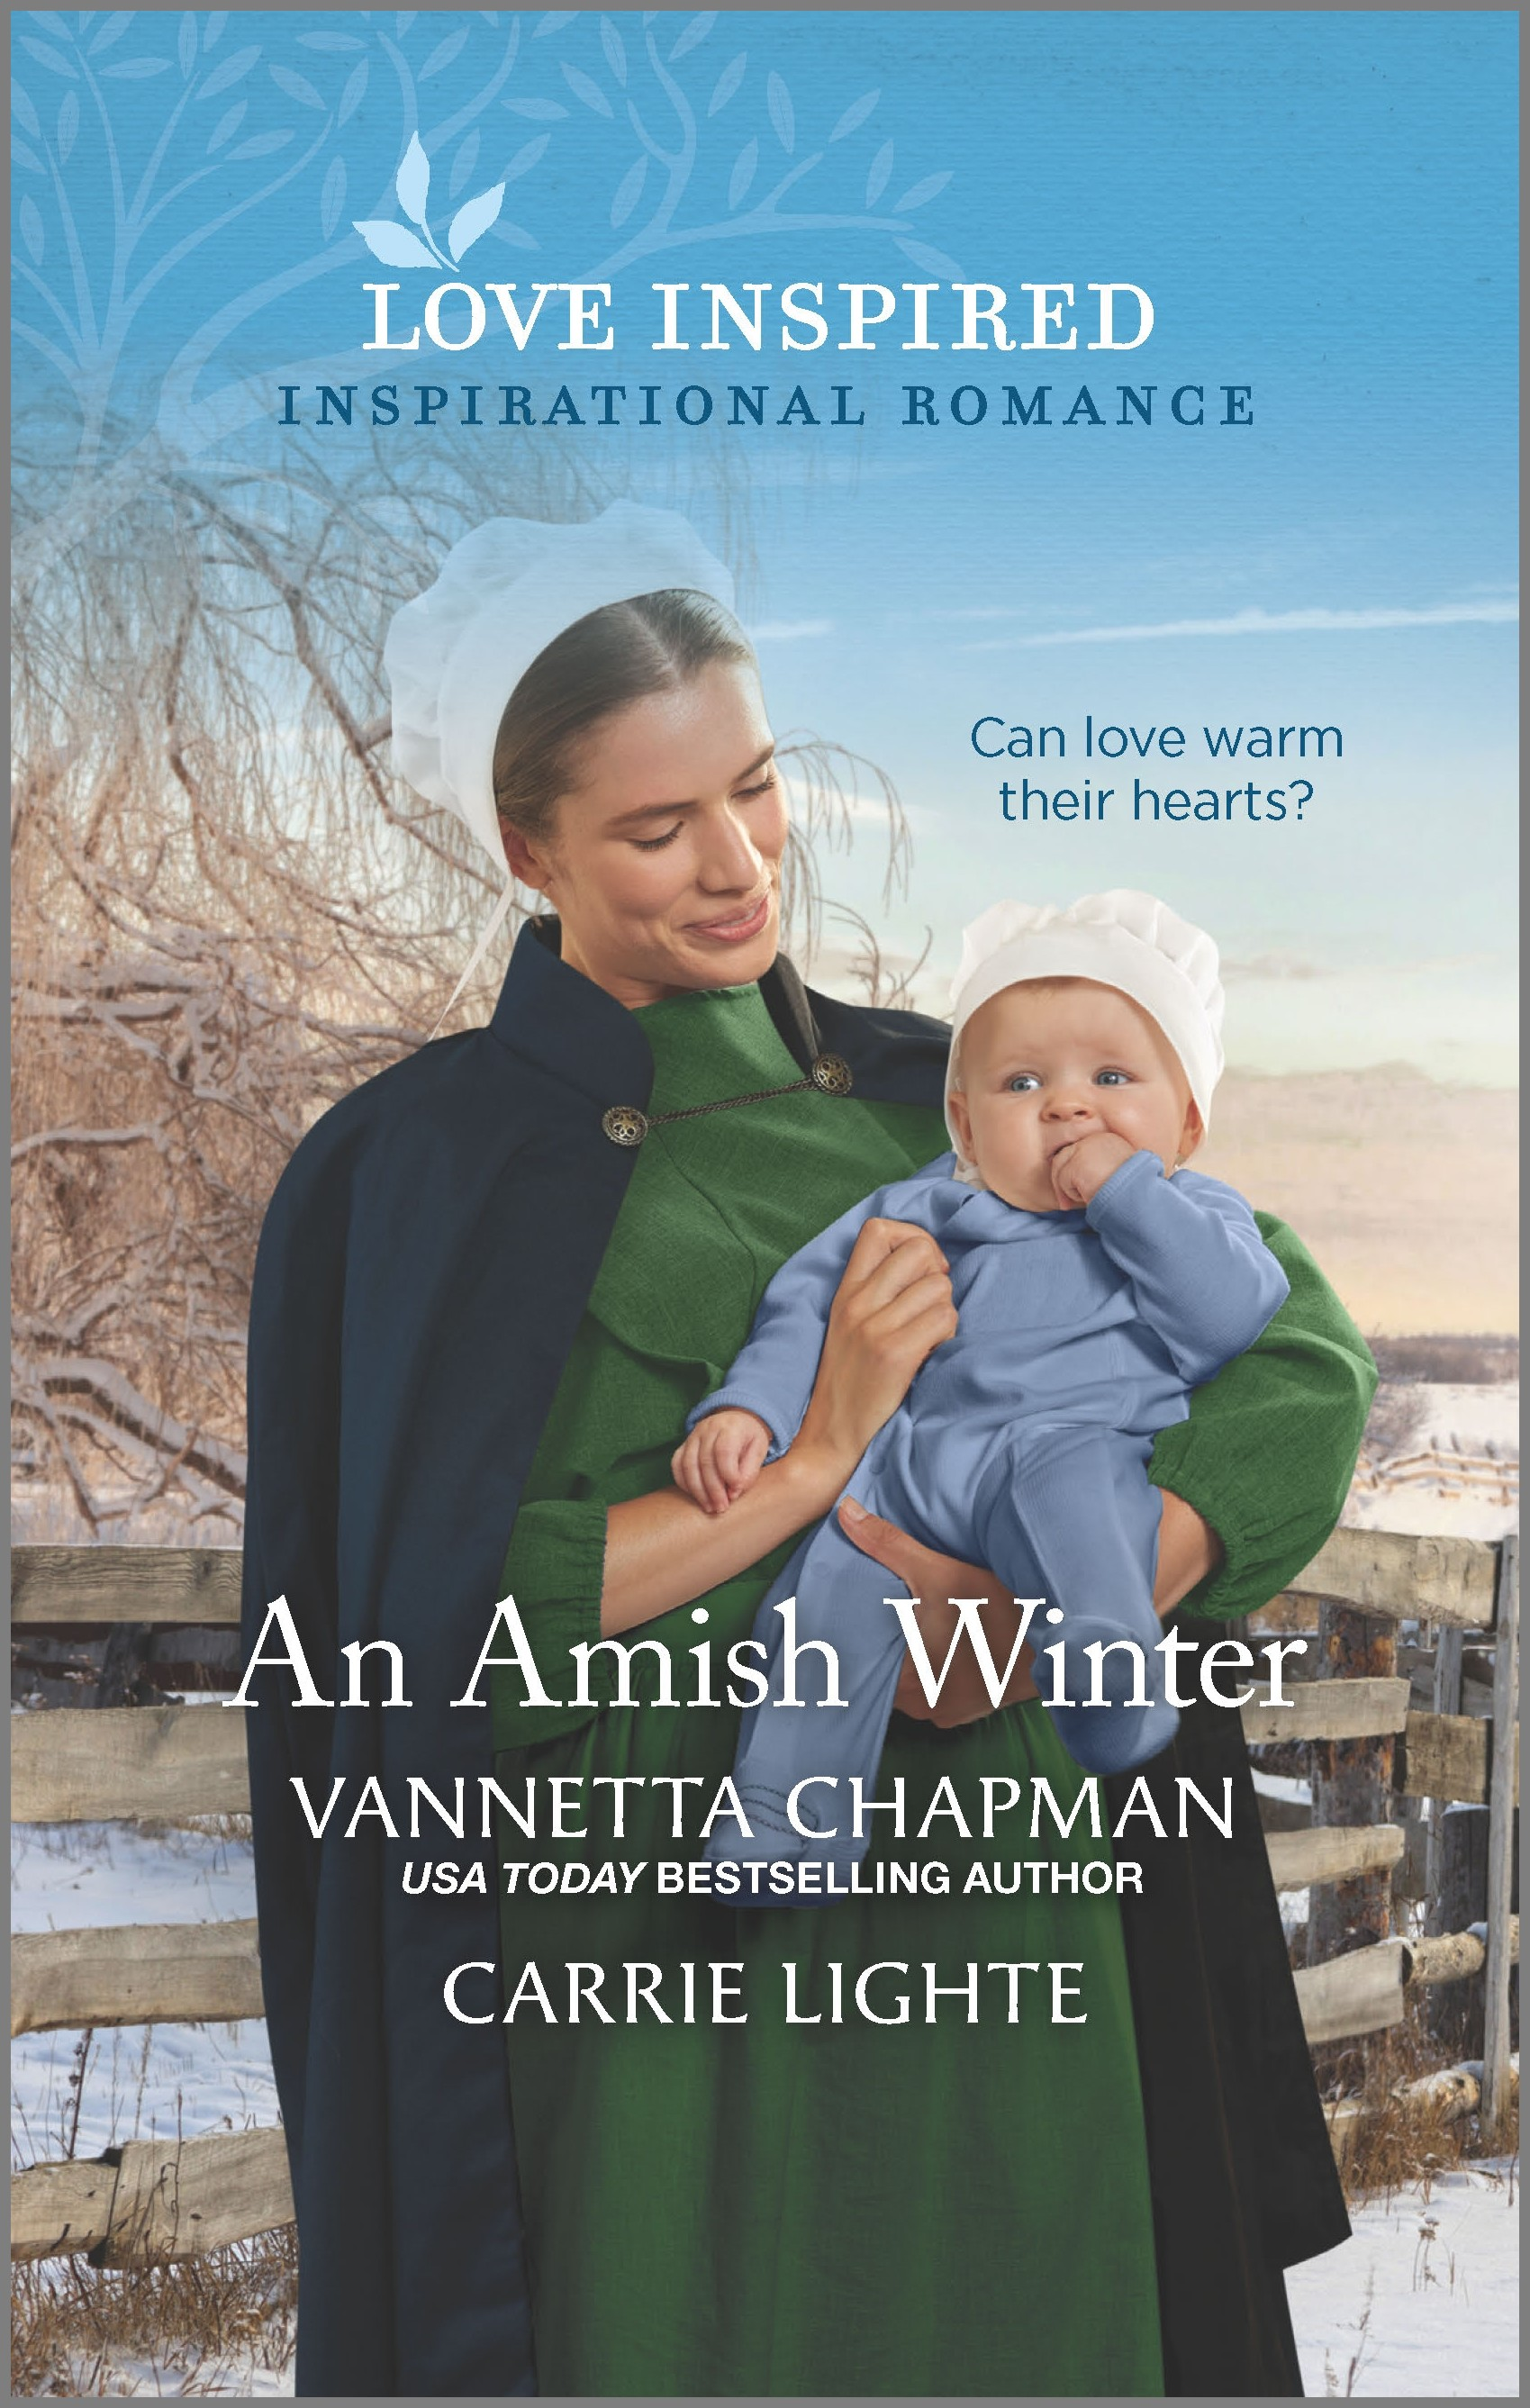 An Amish Winter